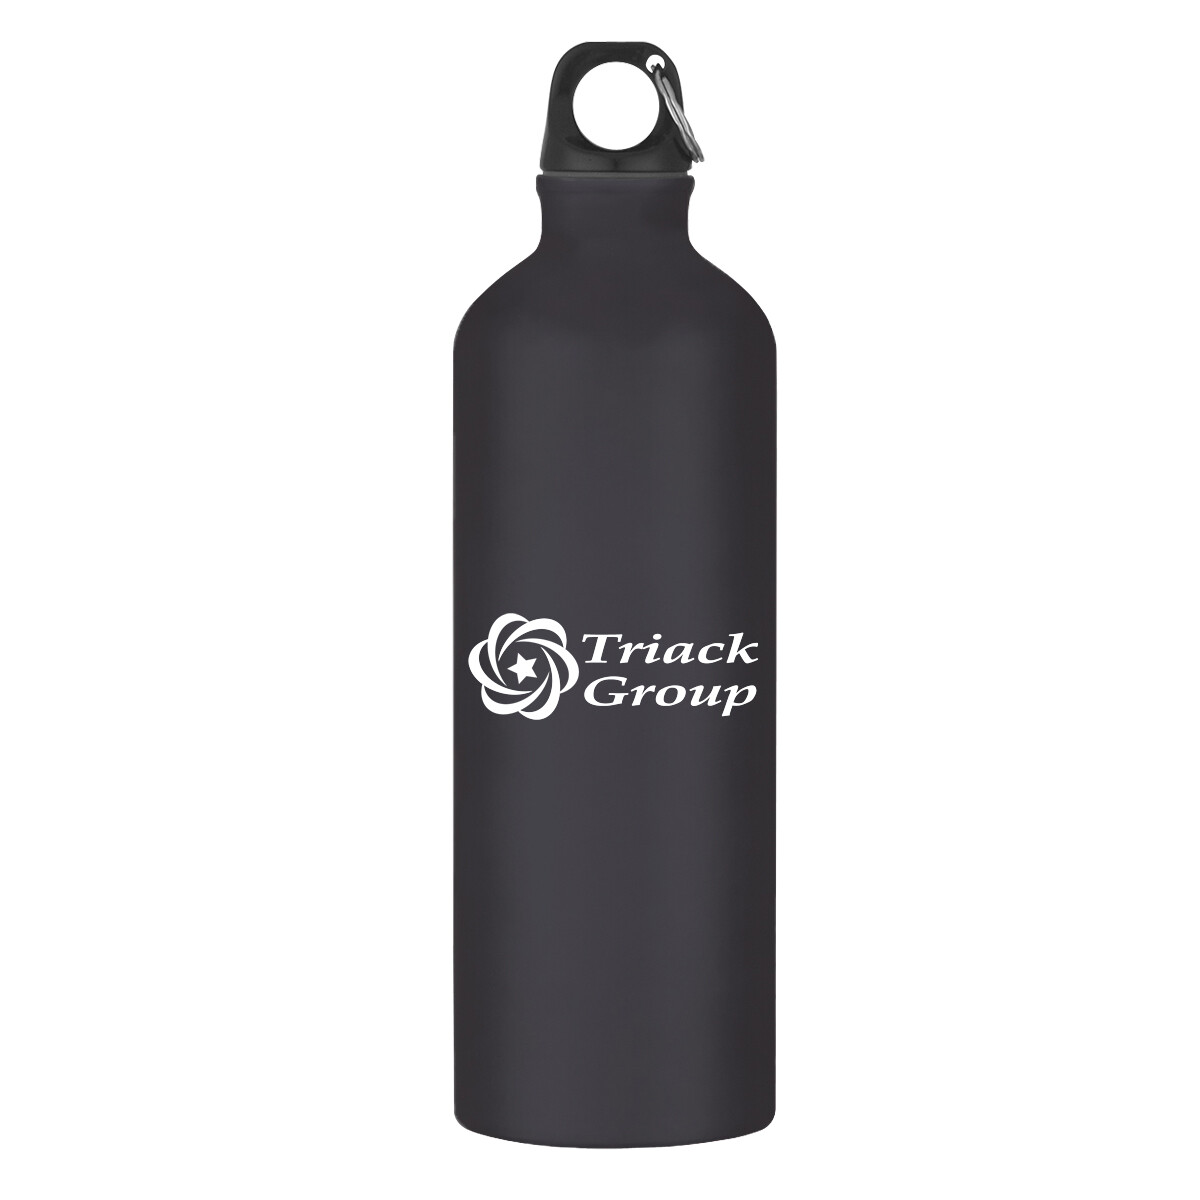 25 OZ. ALUMINUM TUNDRA BIKE BOTTLE